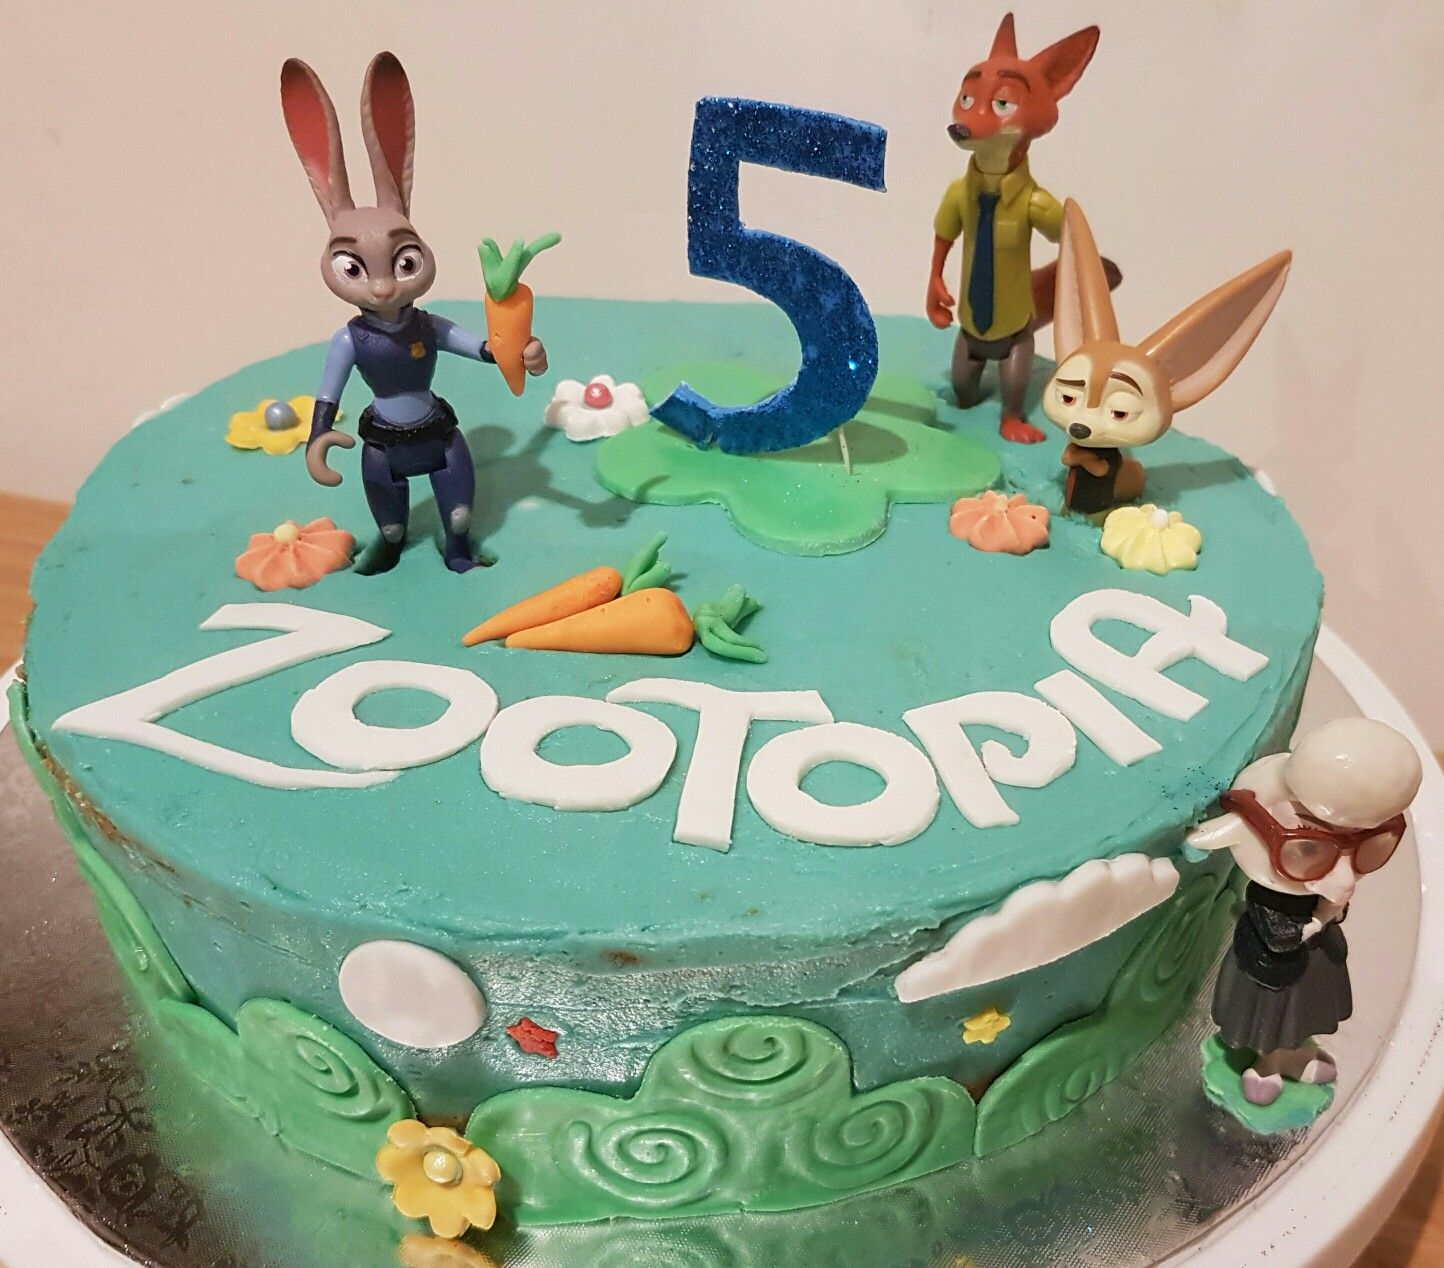 Zootopia cake for a little boys 5th birthday Cakes for Jacks